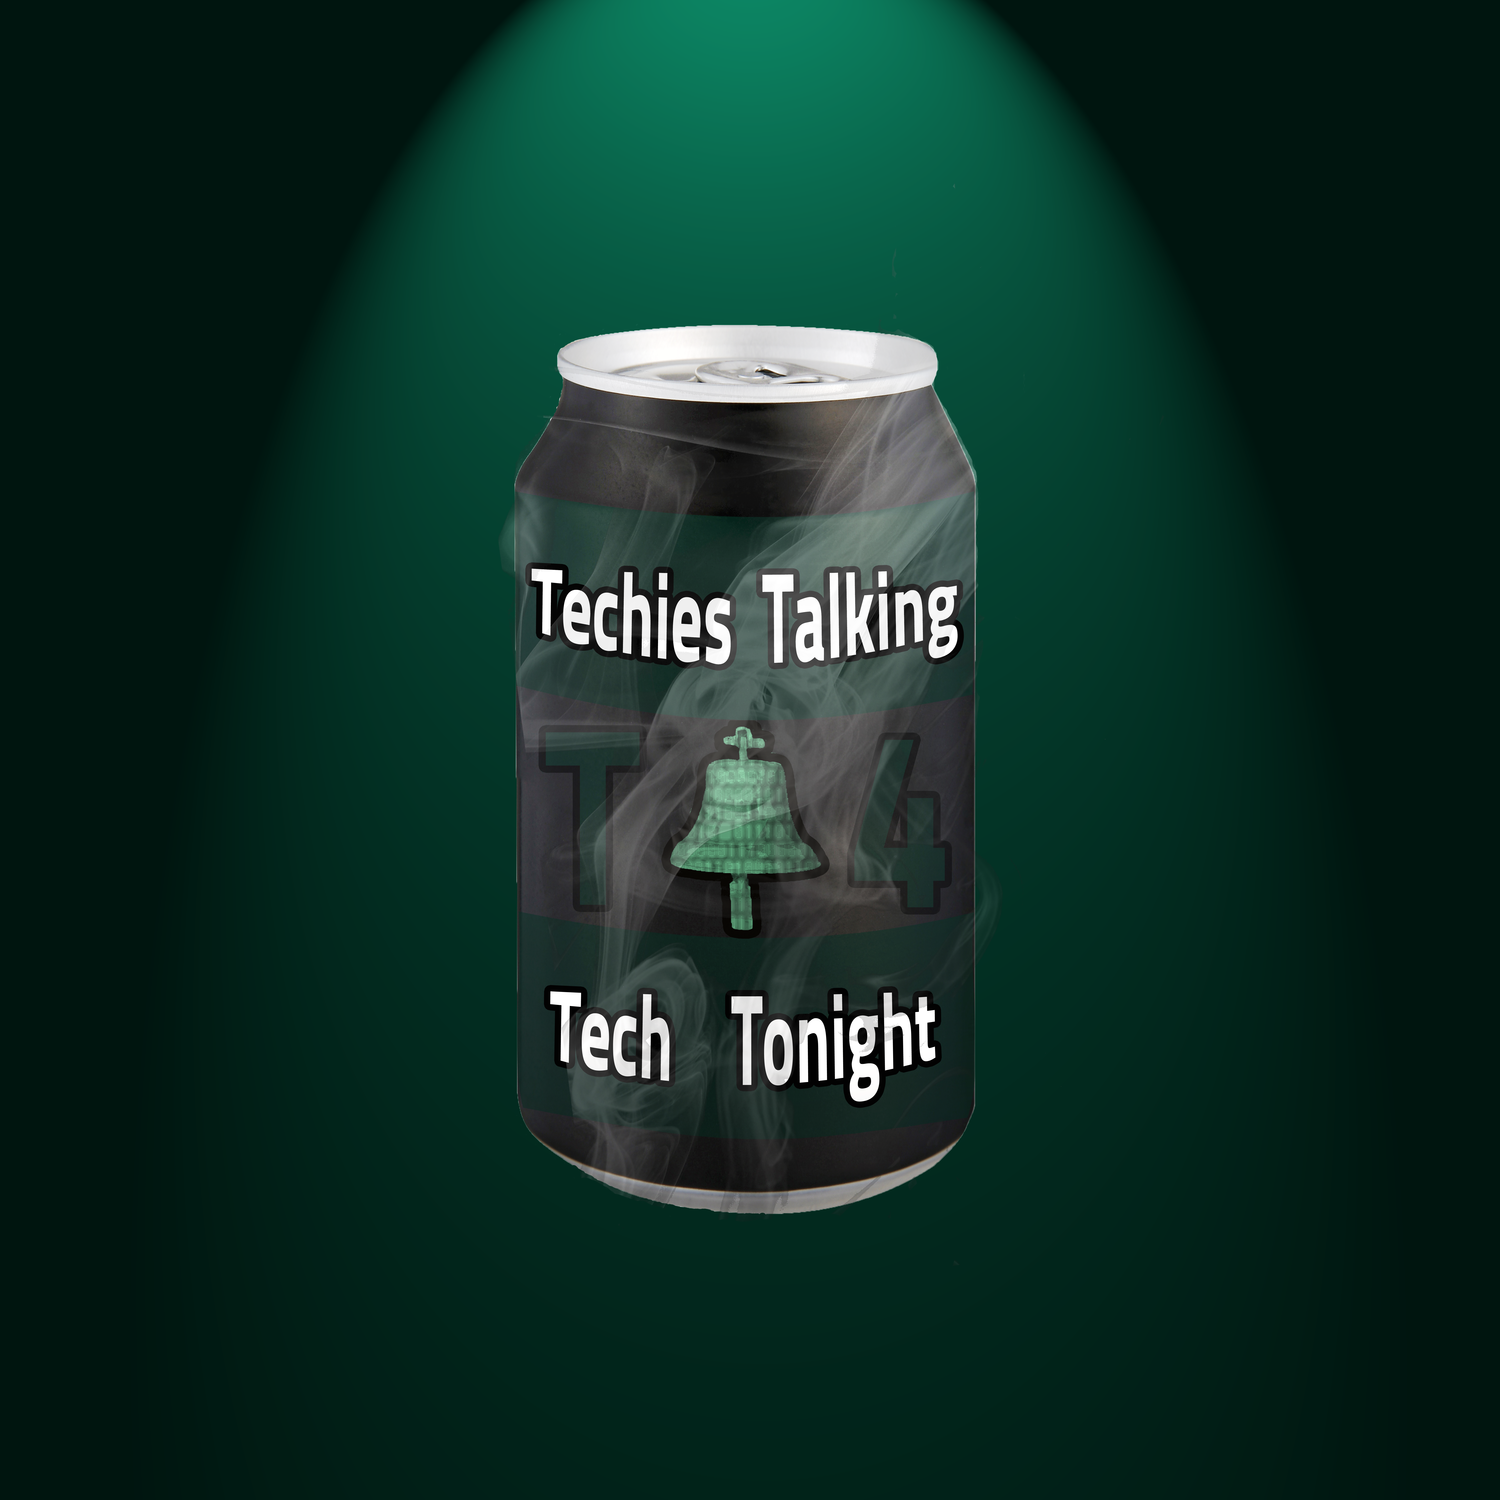 Tech's Last Call | Techies Talking Tech Tonight